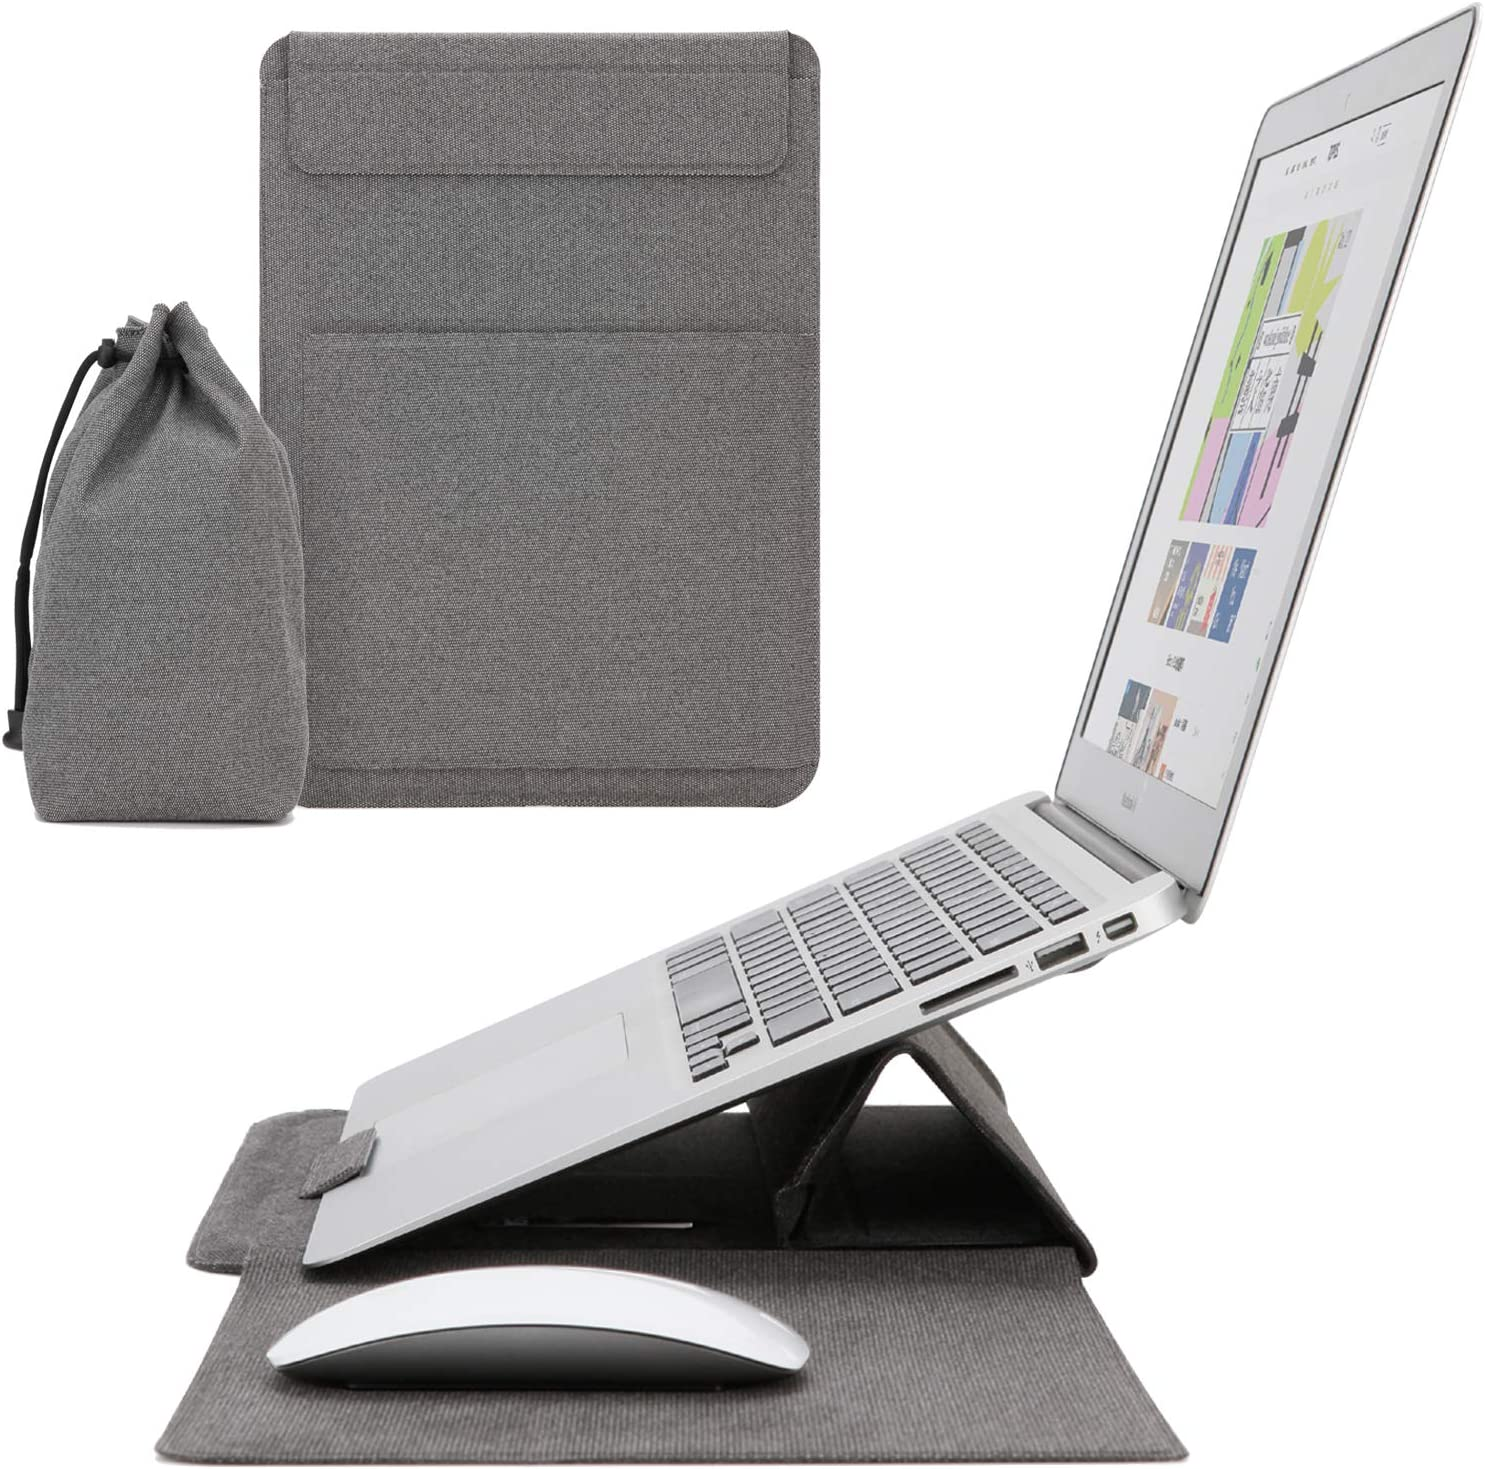 IMMOOWWI 13 inch Laptop Sleeve with Stand and Mouse Pad, Waterproof Shock Resistant Foldable Case for 13-13.3 inch MacBook Air/Pro, Dell XPS 13 Lenovo ThinkPad X1 Carbon HP/Acer Chromebook 13, Gray